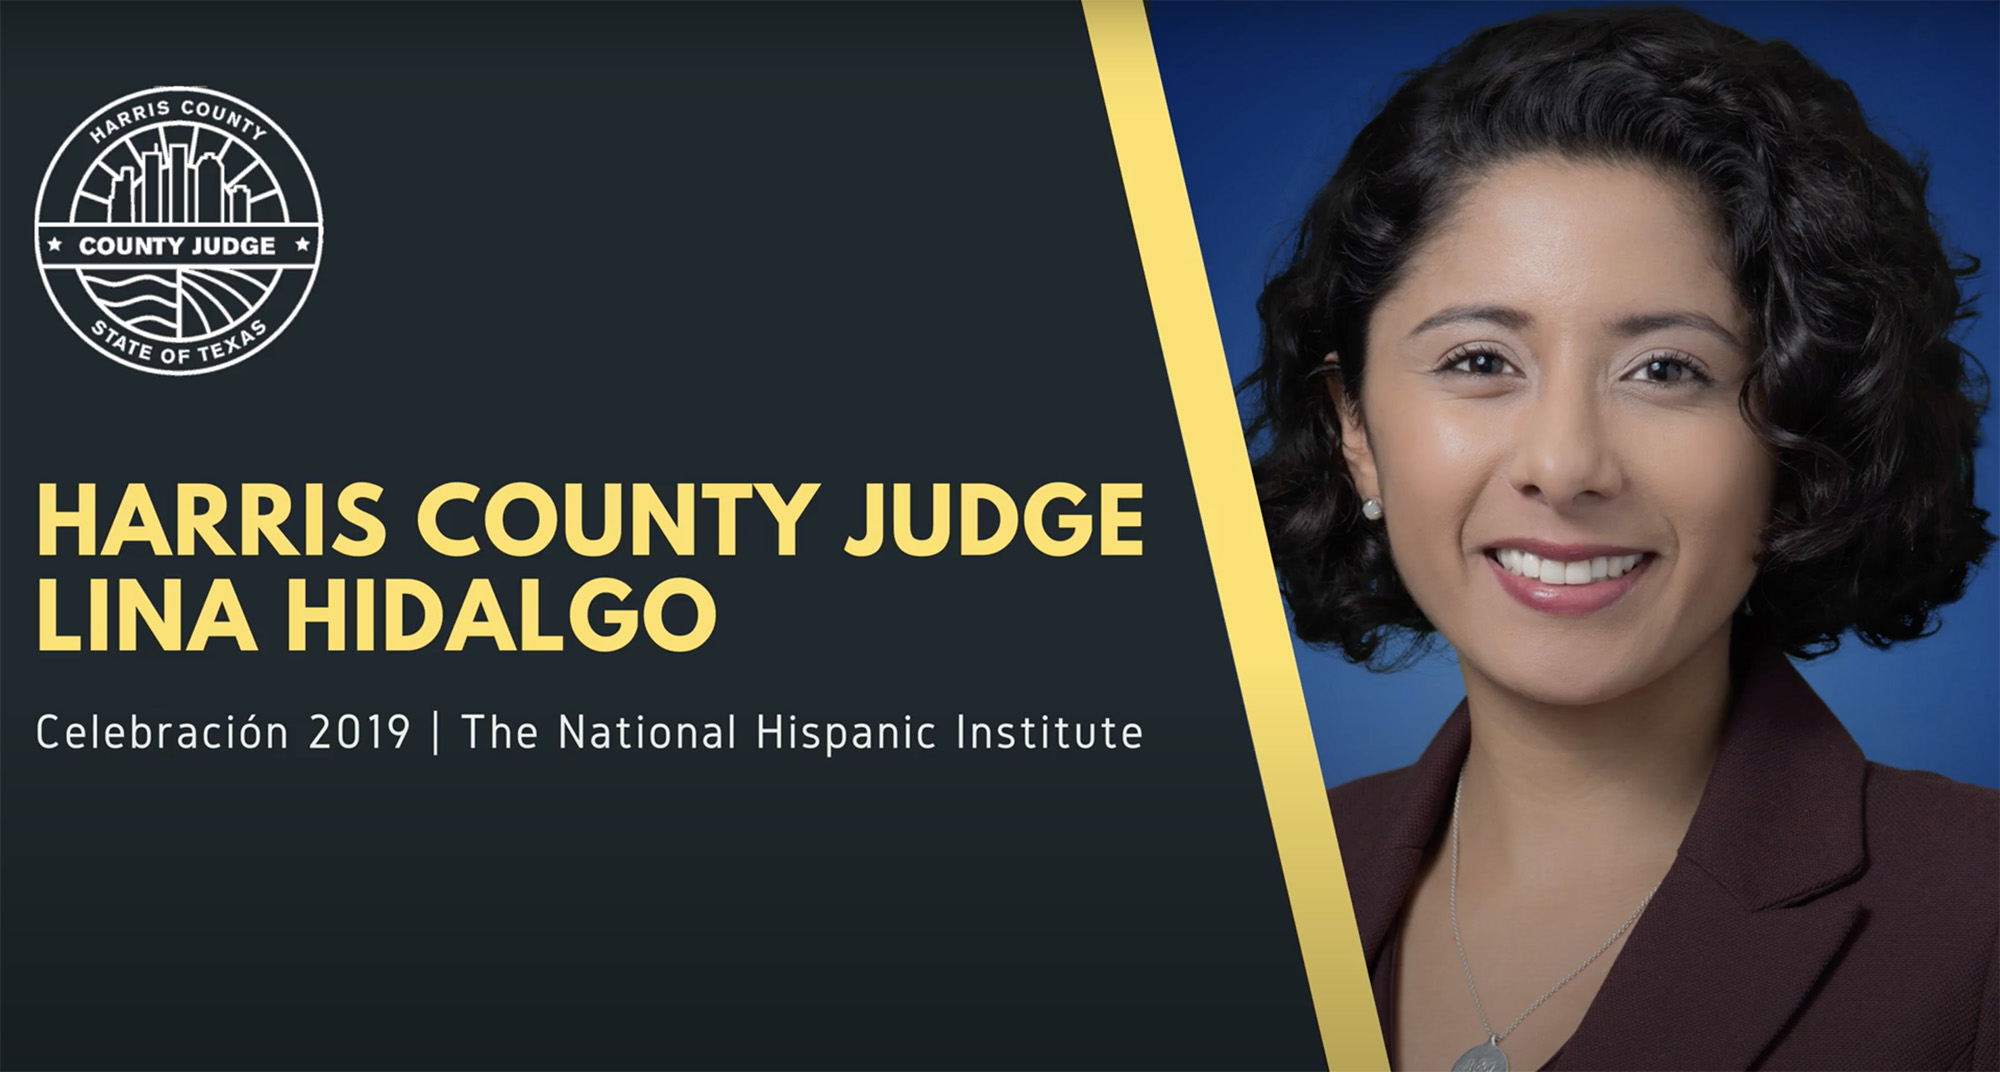 harris county judge lina hidalgo 2020 nhi person of the year